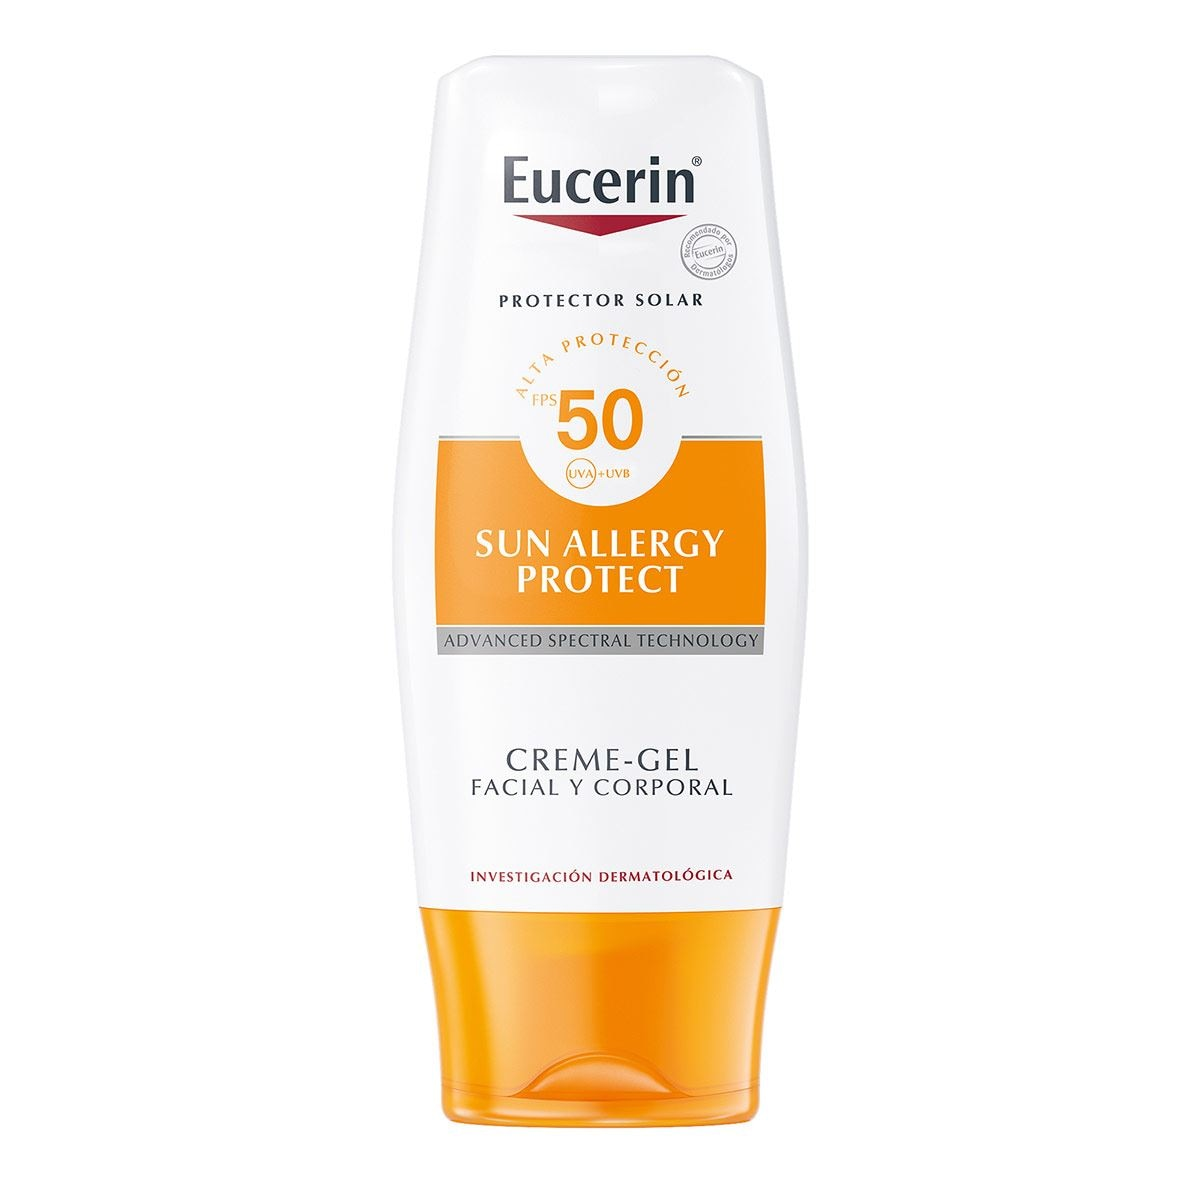 Eucerin sun, allergy crema-gel fps 50, 150 ml  - Sanborns